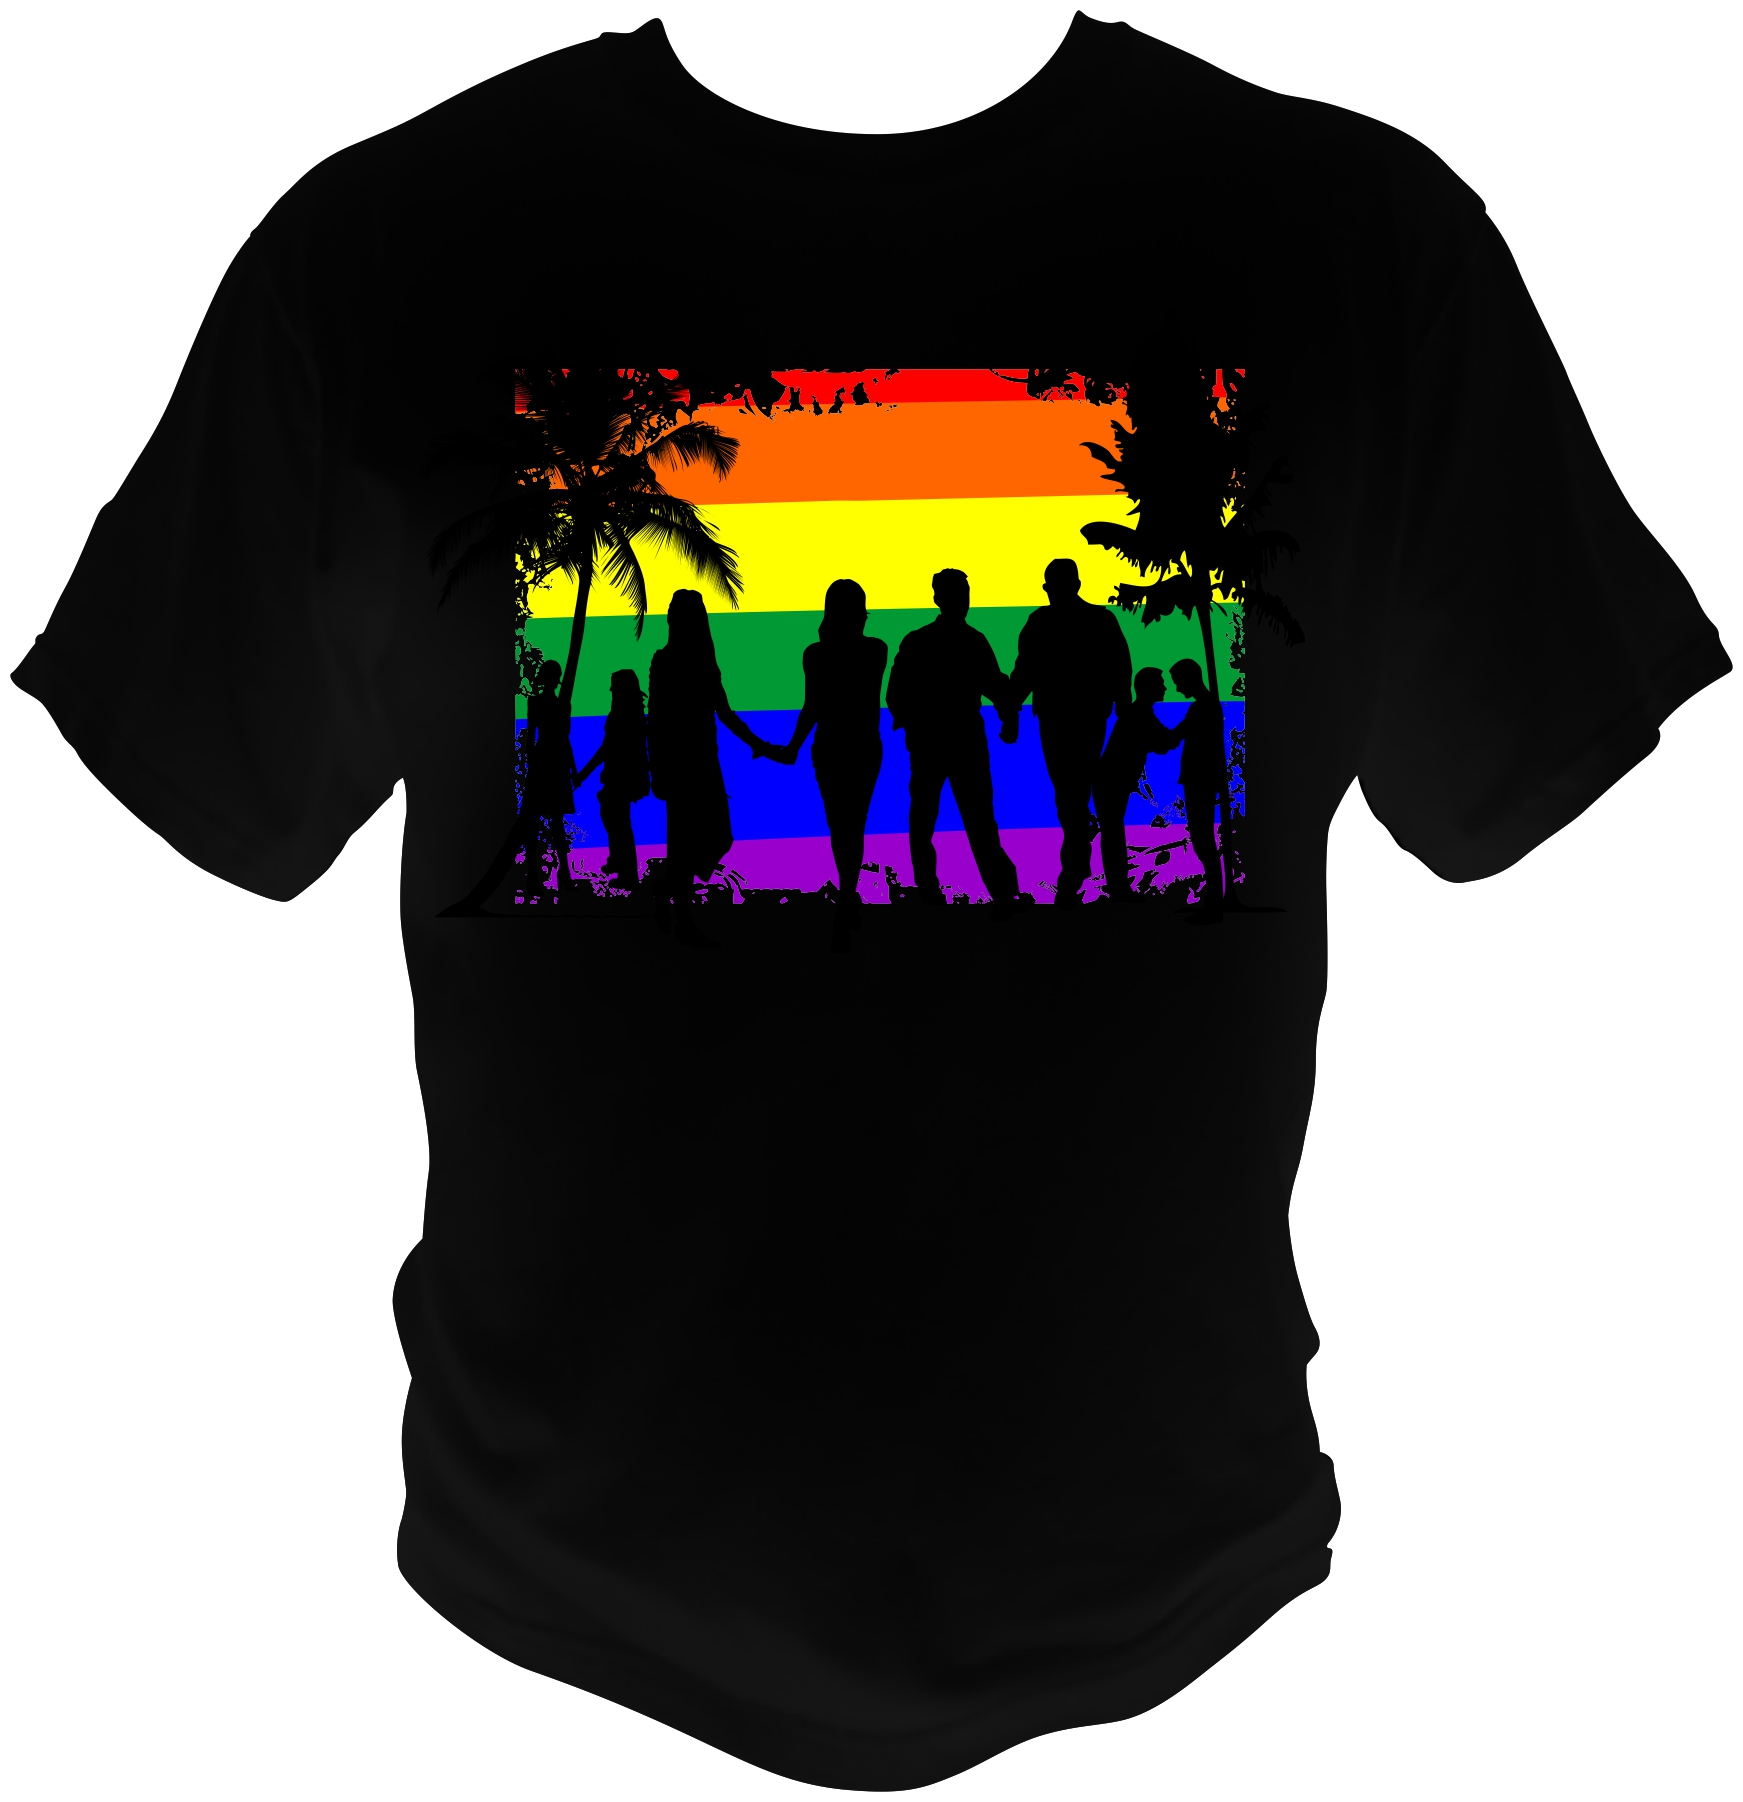 Beach Theme Shirts are Black 100% cotton T-Shirt with rainbow beach scene and gay couples in silhouette